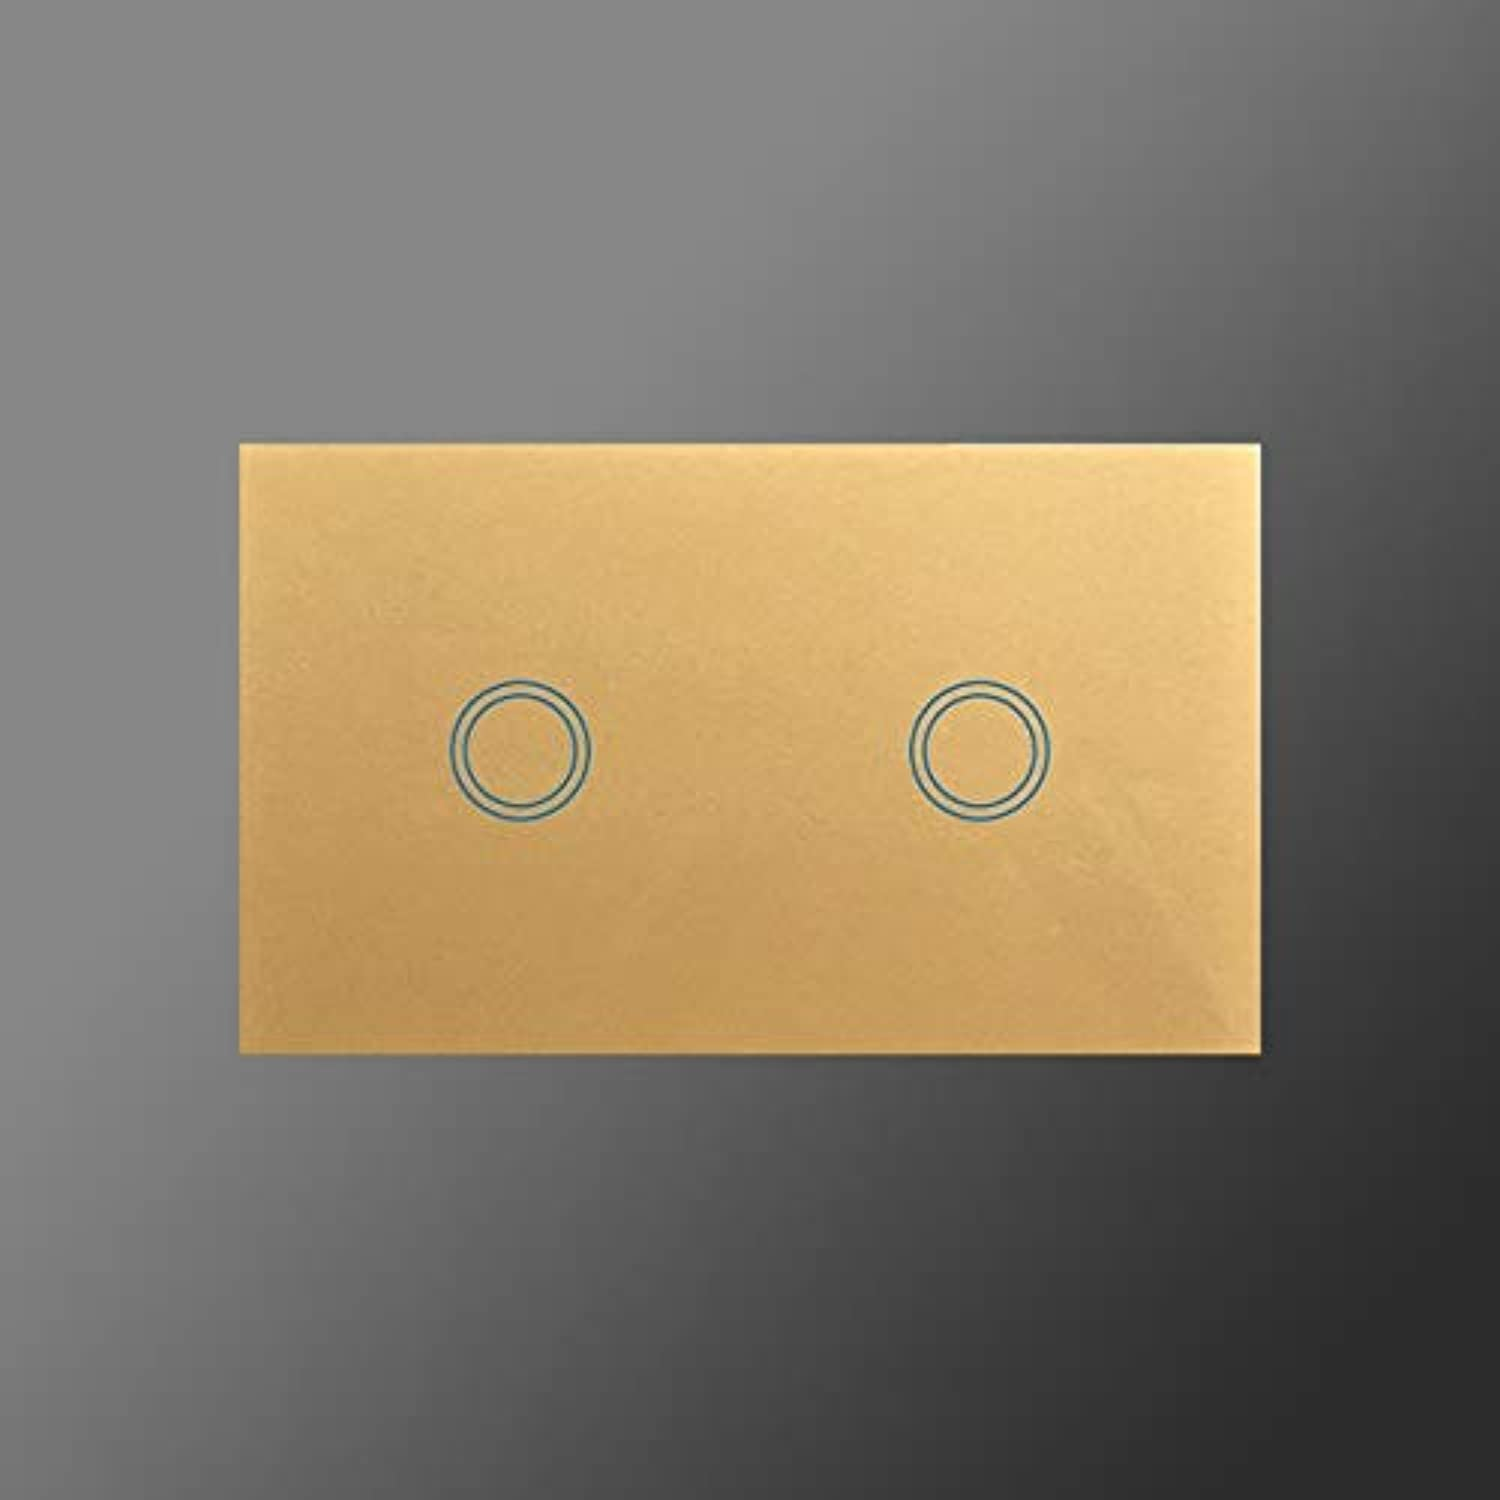 2 Gang 1 Way Crystal Glass Panel Touch Switch 240v,HUANGXING high Quality US AU Standard 1000W Wall Light Switch & Led Indicator  (color  gold)